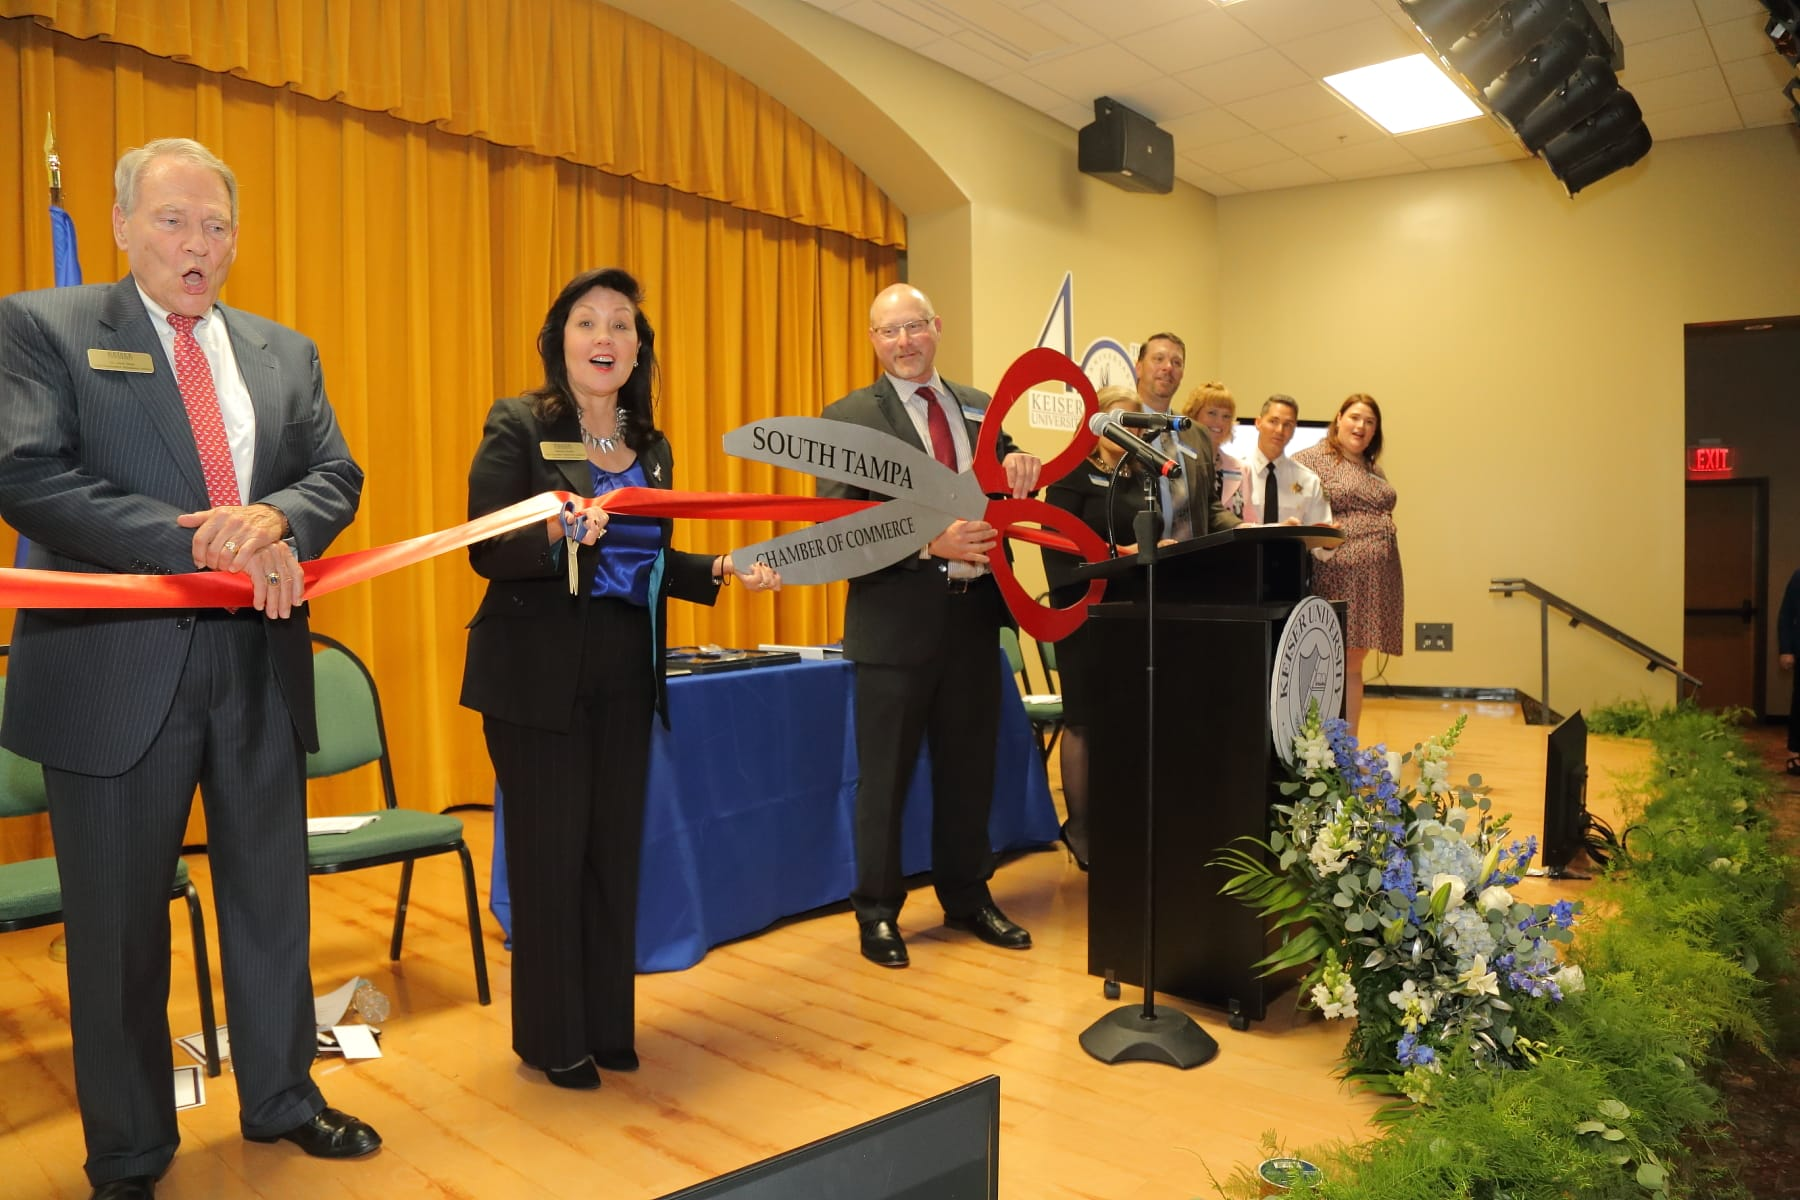 KU's Tampa, New Port Richey and Clearwater Campuses Enjoy 40th Anniversary Celebration